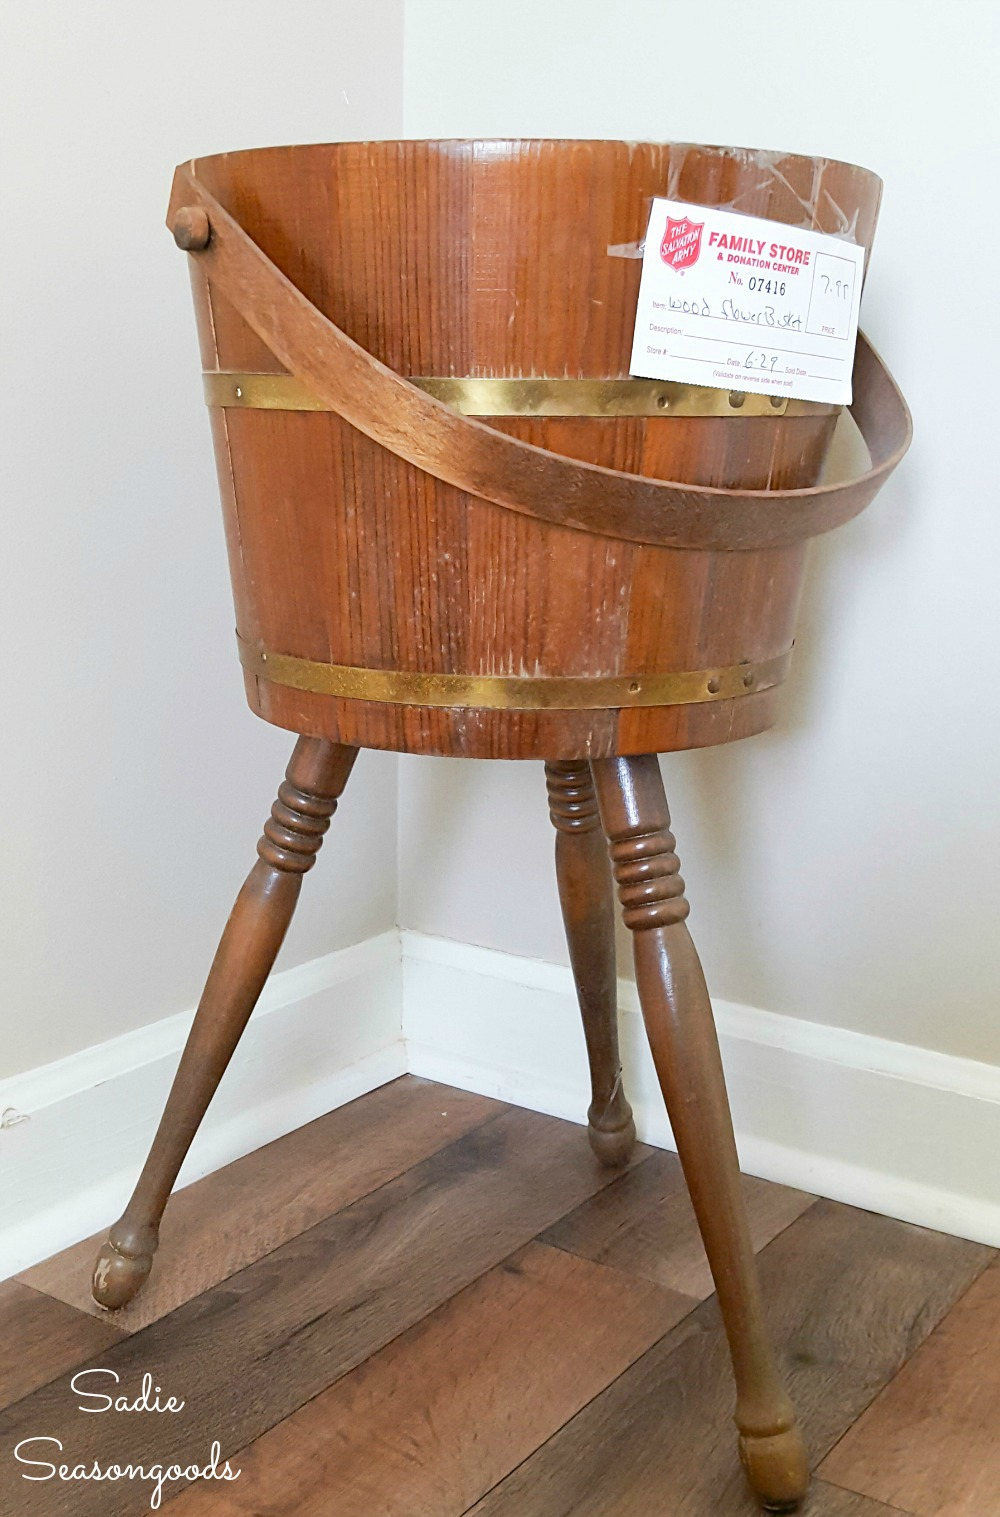 Upcycling a sewing bucket as a Halloween candy stand